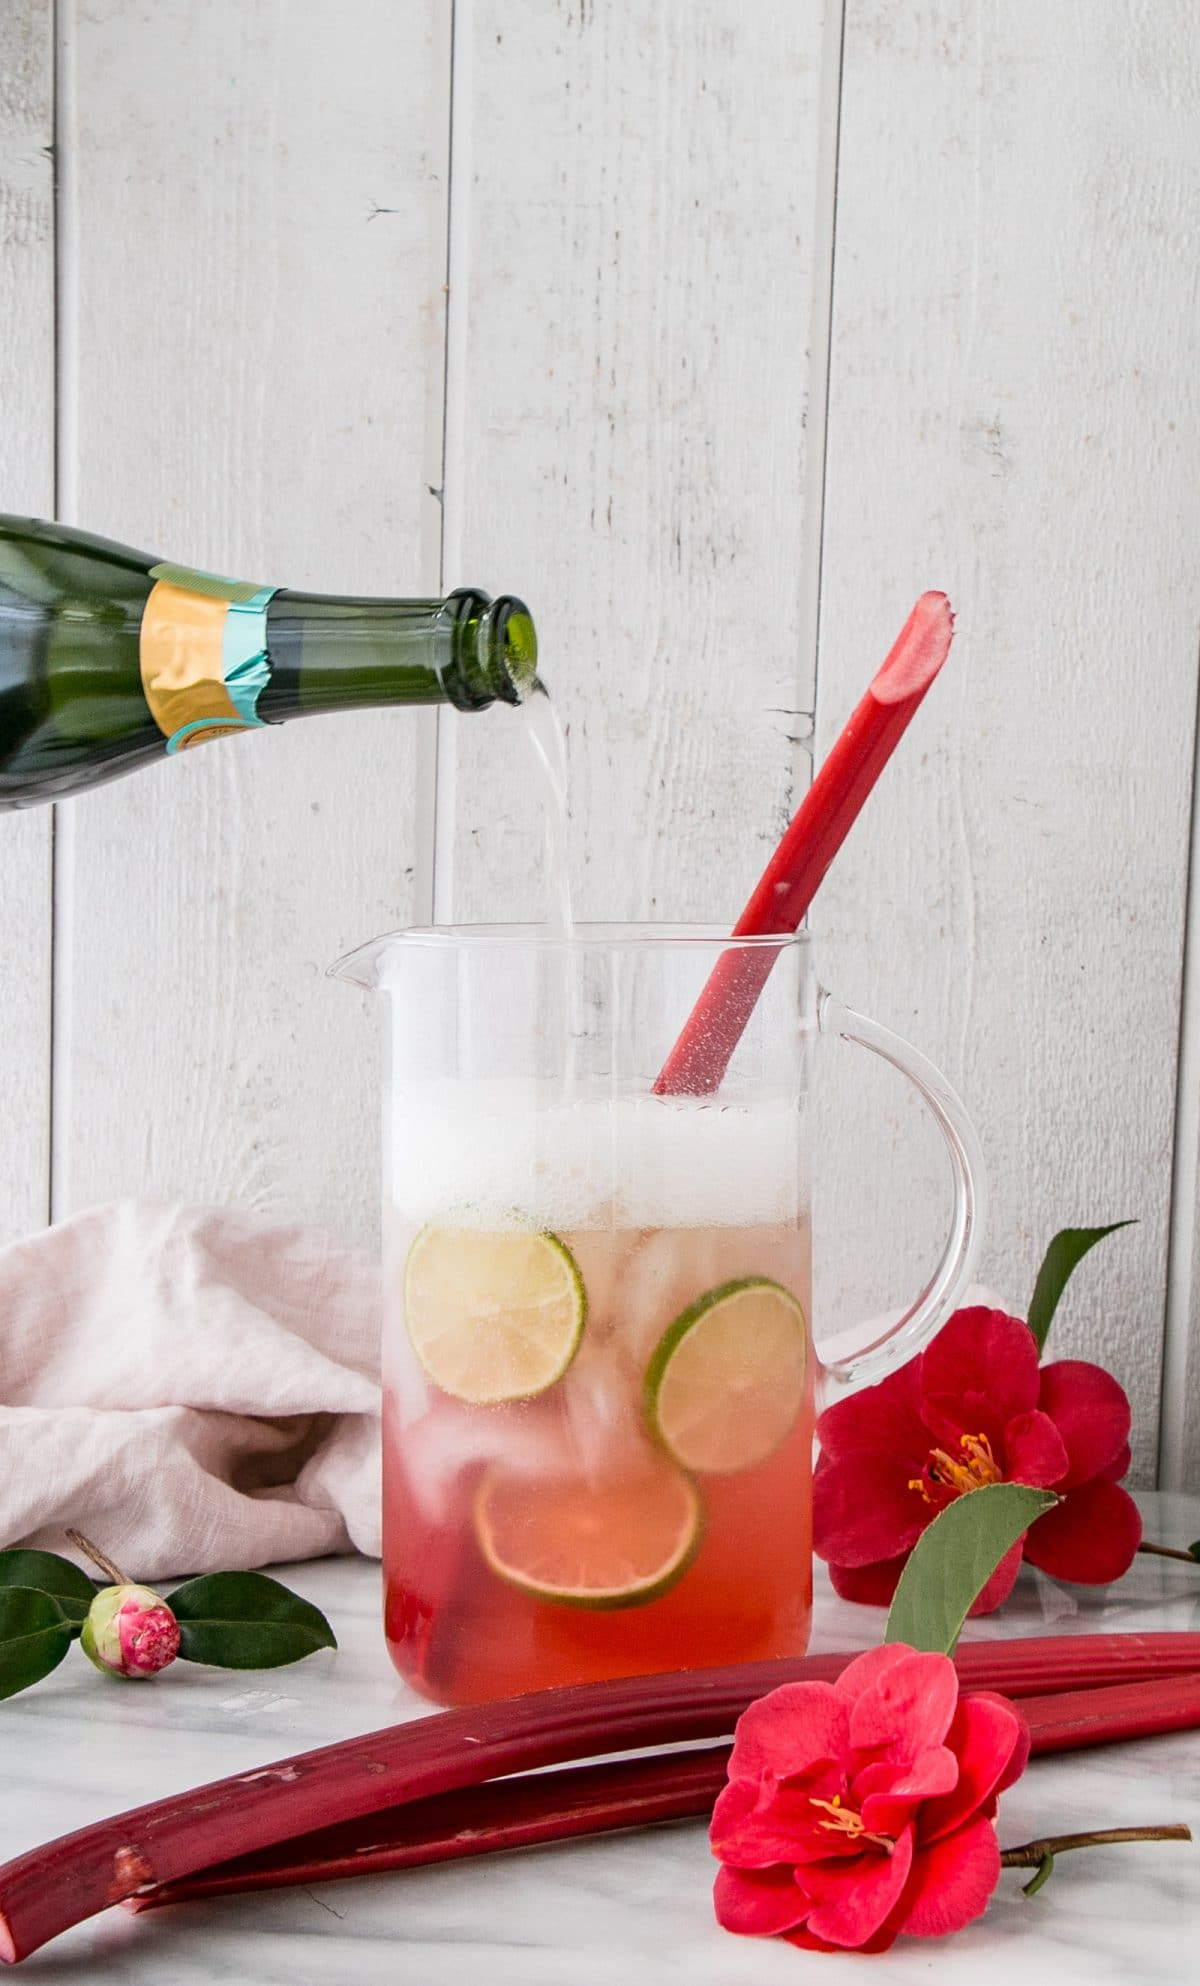 Sparkling Rhubarb Margarita cocktail recipe